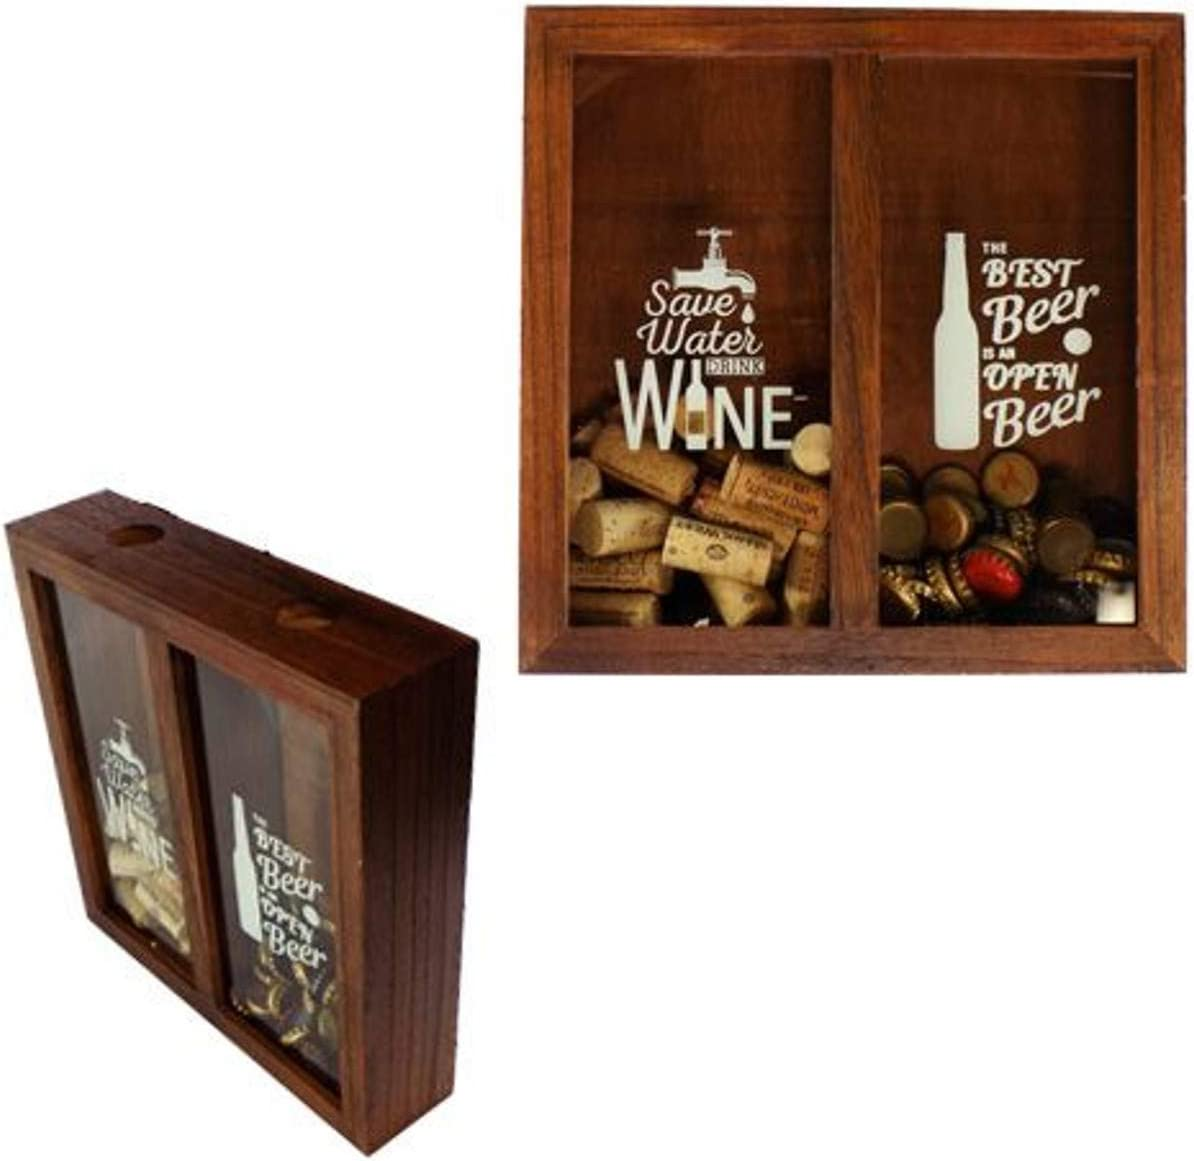 Barry Owens BV723 Wood Wine Cork and Holder Cap 11 最新 Inch Box Beer トラスト